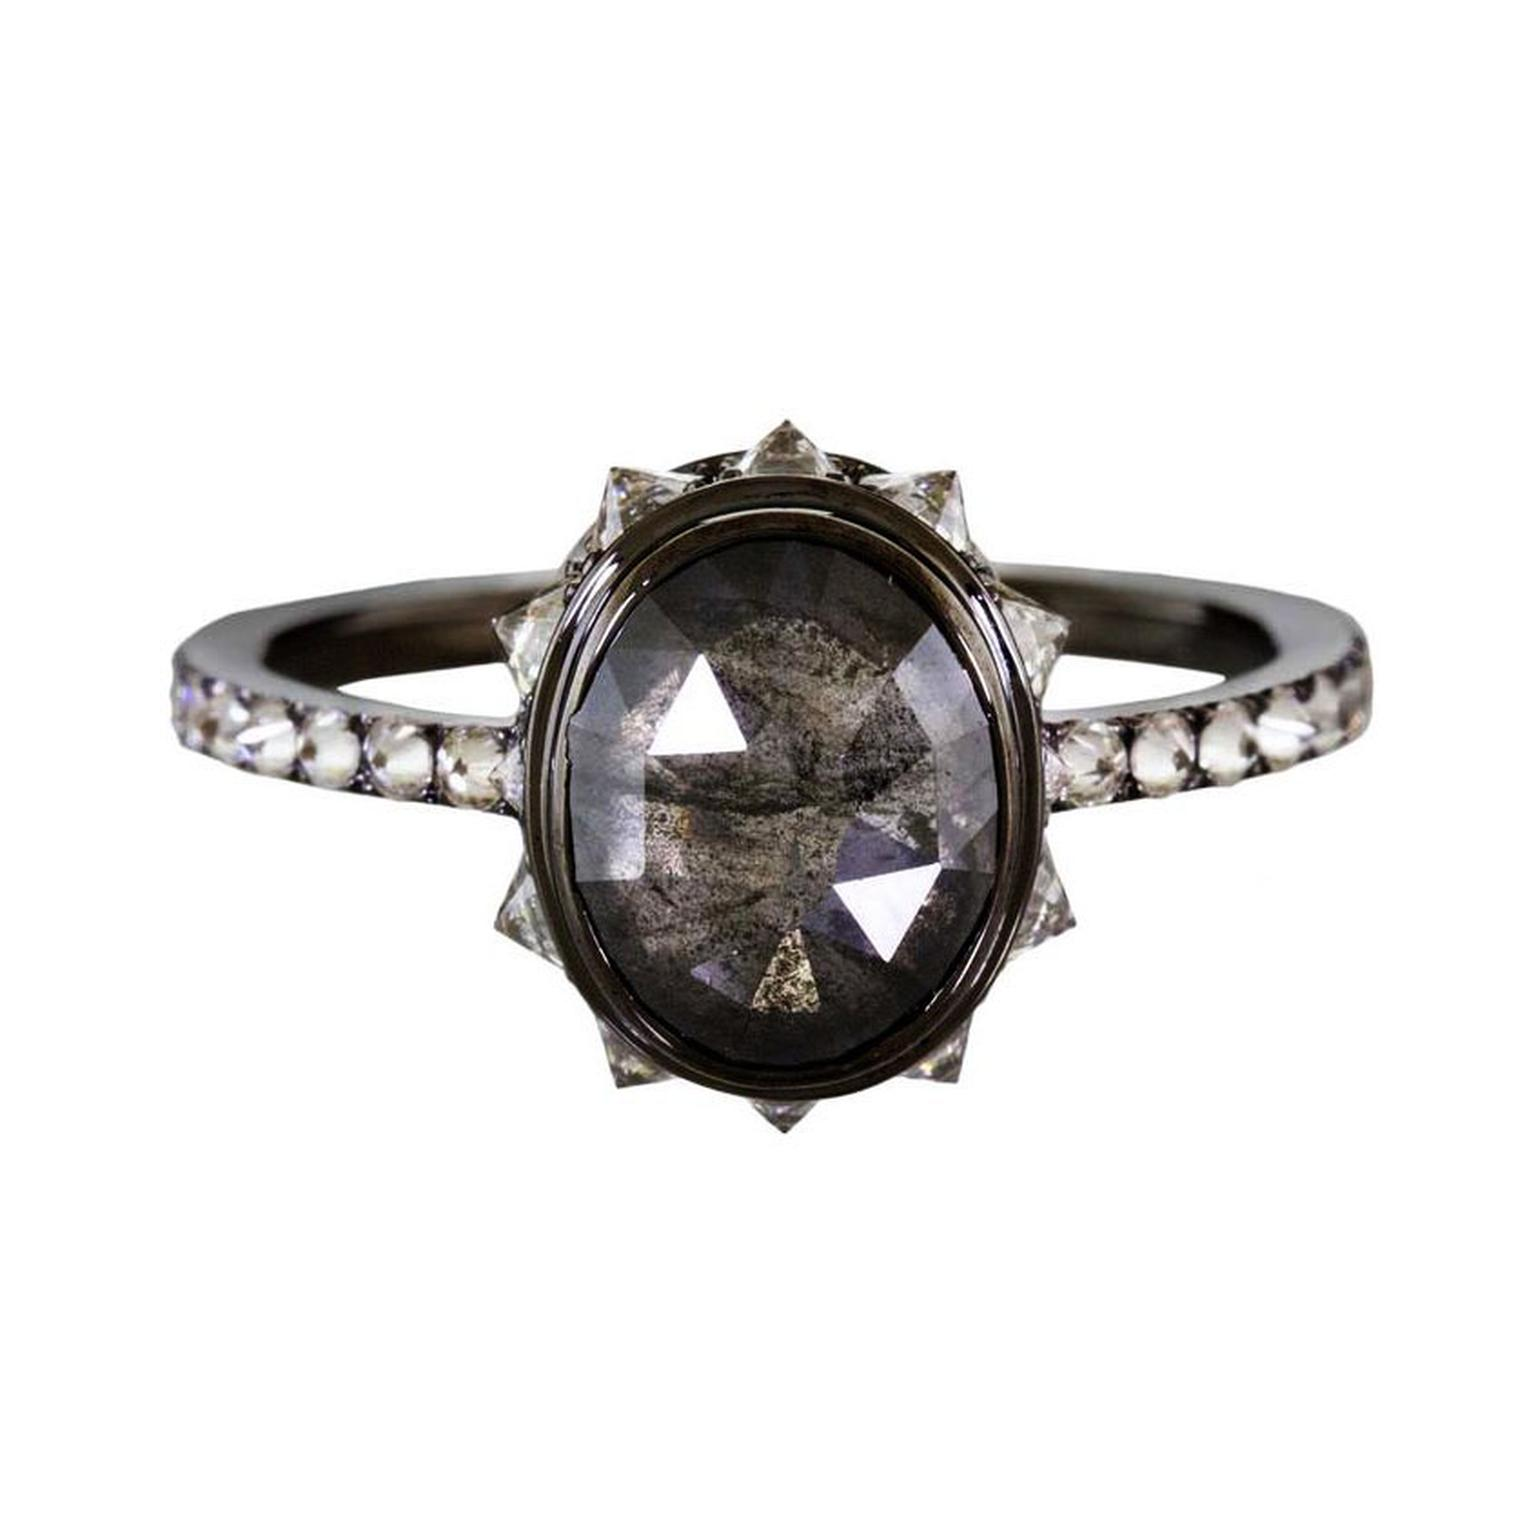 Black diamond engagement rings the unconventional choice